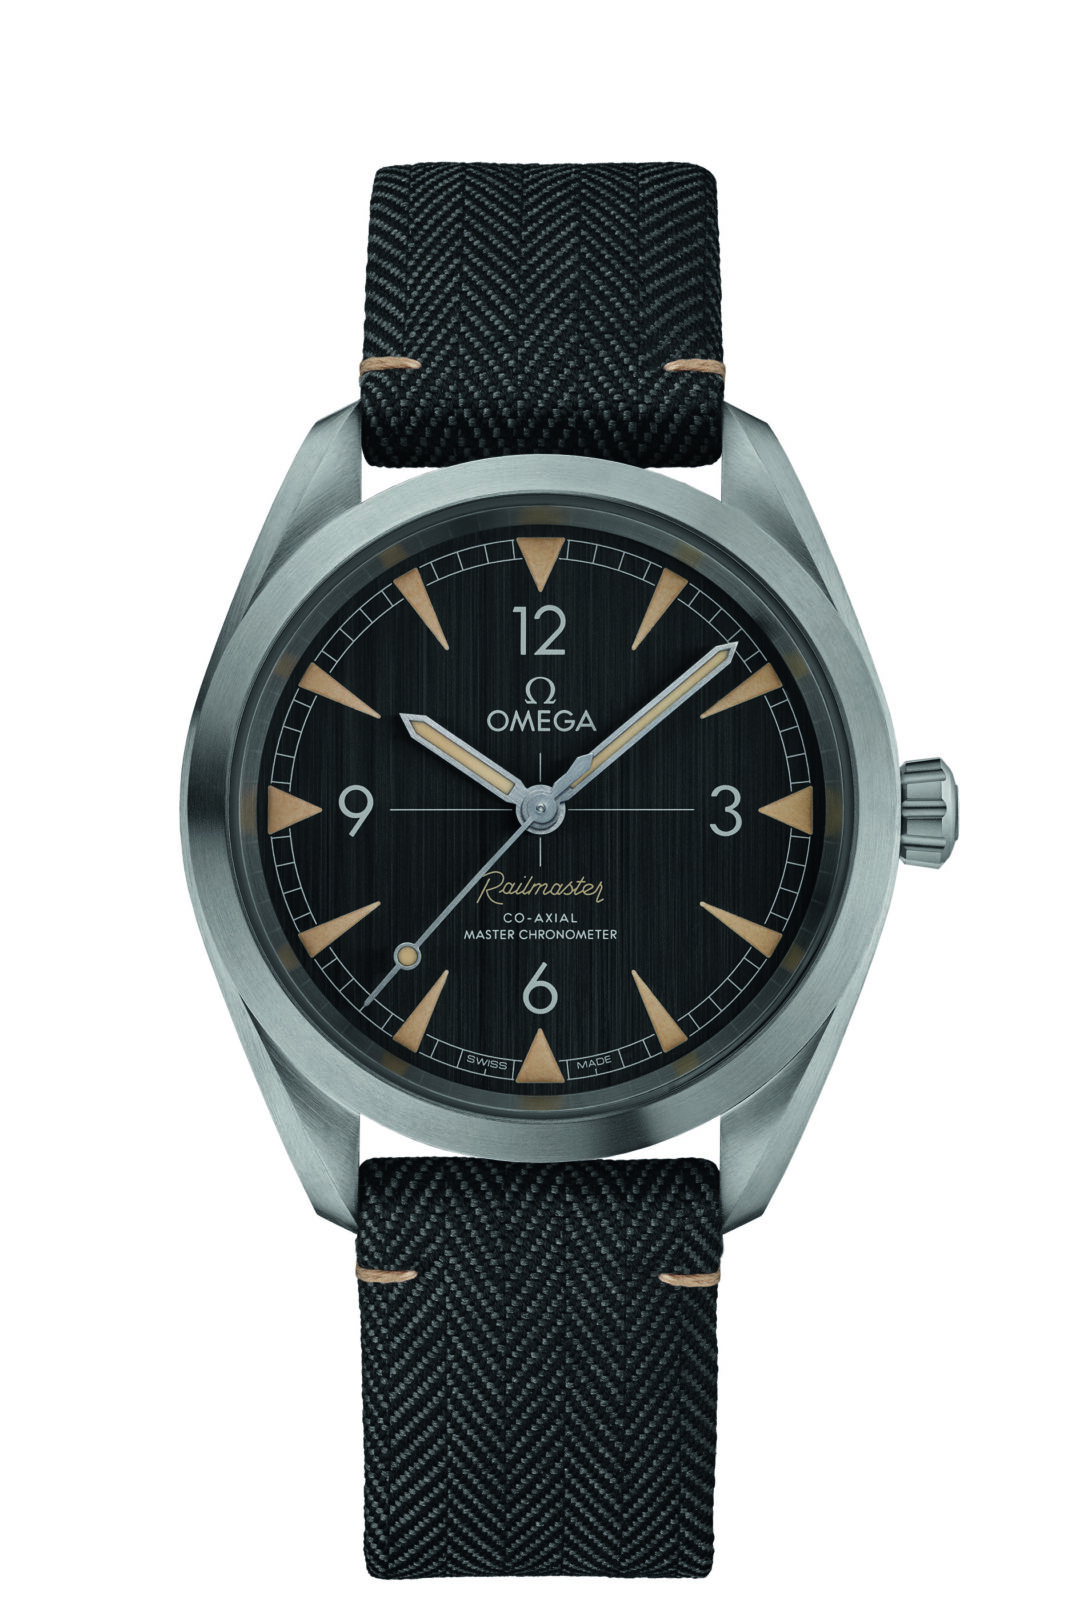 Omega 'Railmaster' Co-Axial Master Chronometer